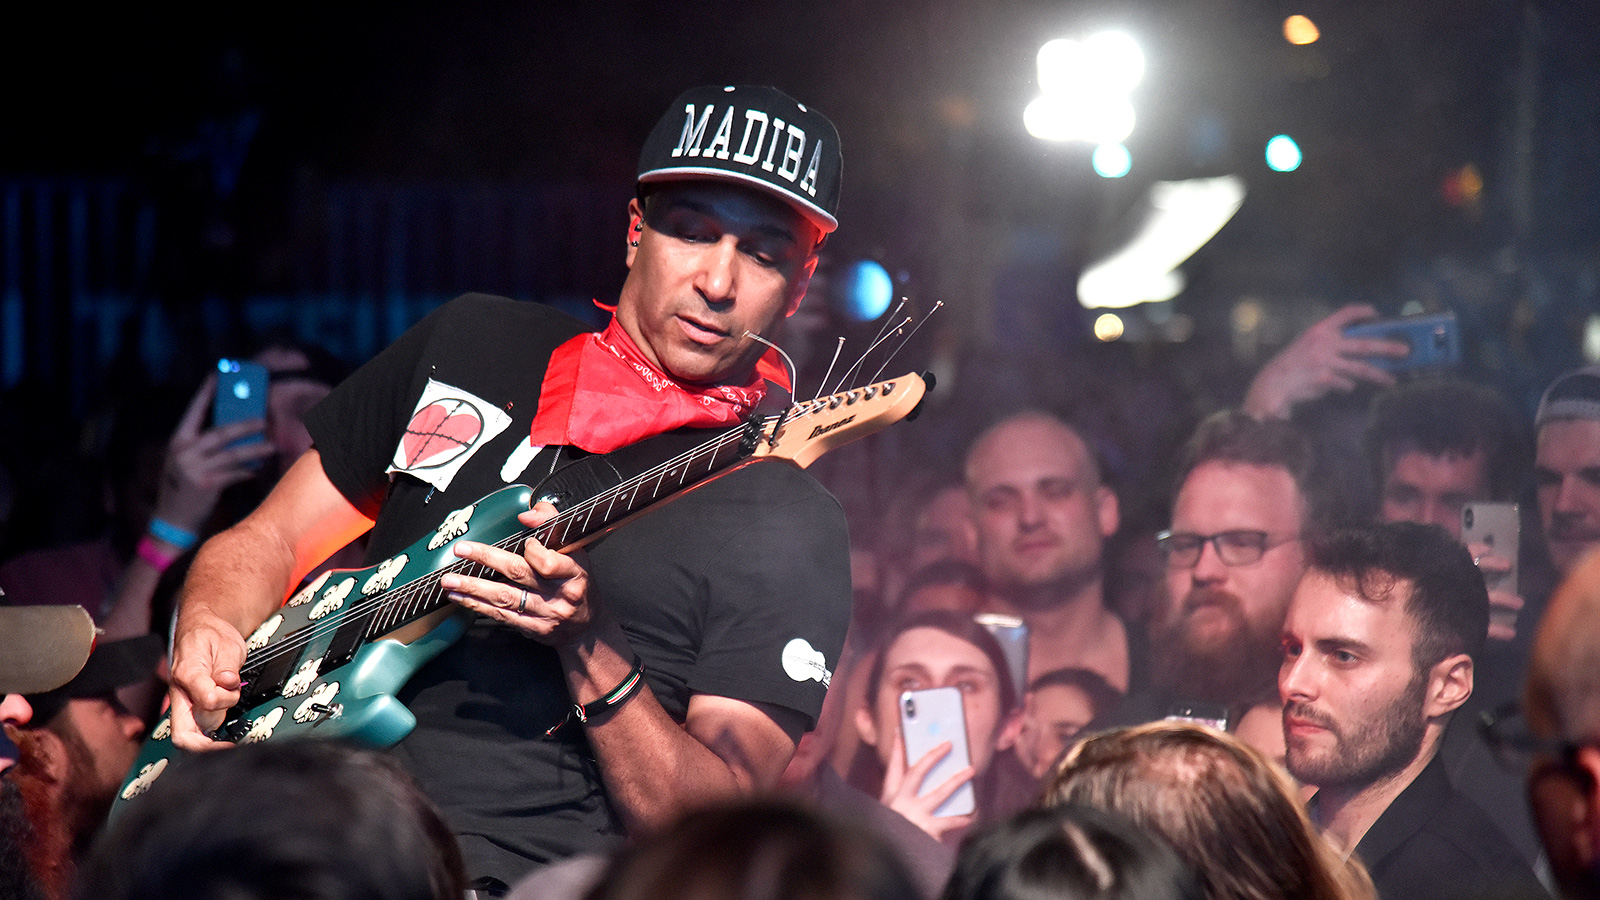 Watch Tom Morello Toss Fan's Phone Into Crowd During Illinois Performance